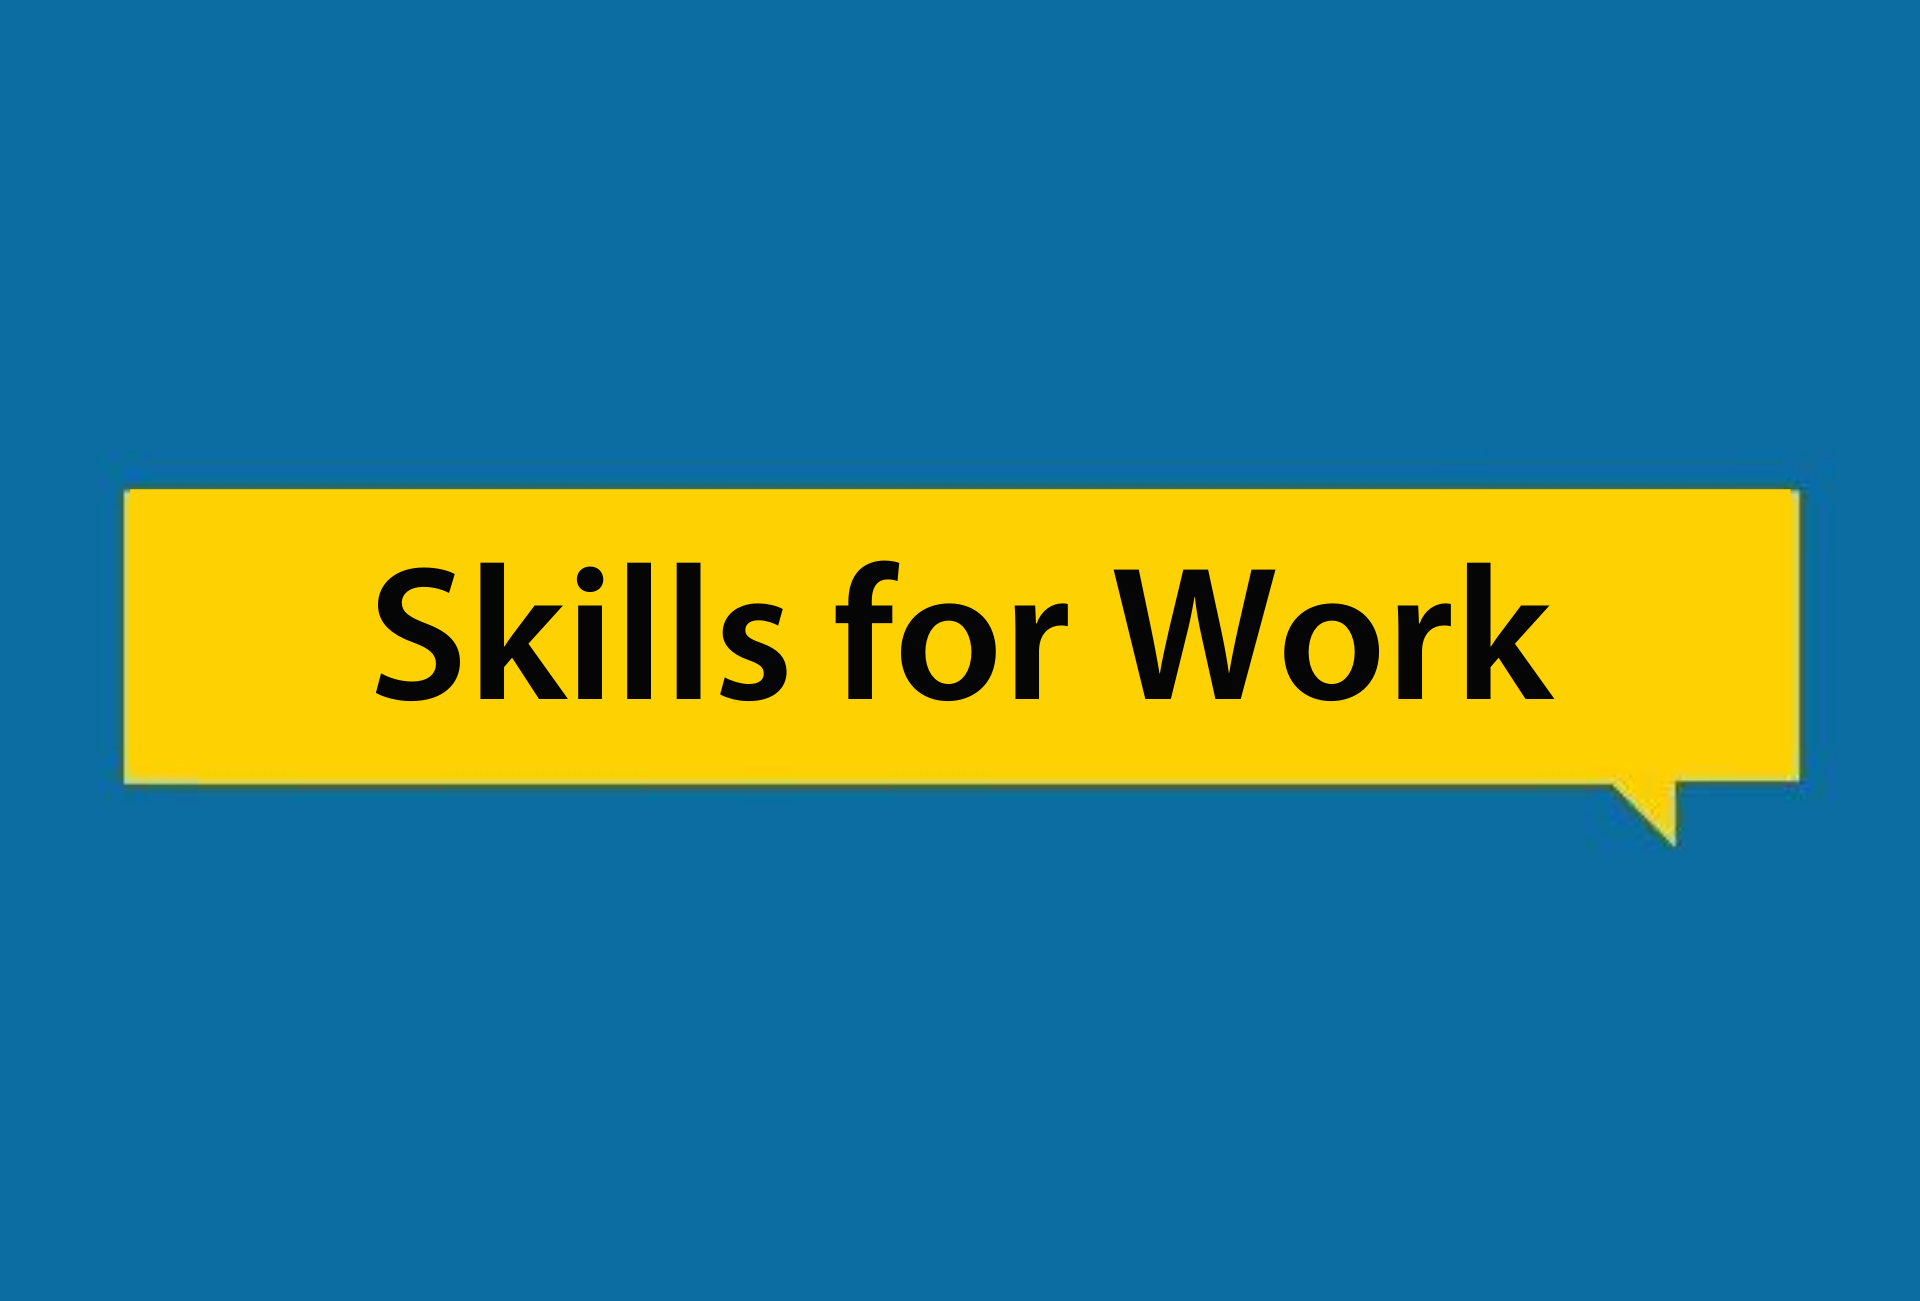 Skills for work in a yellow speech bubble, on a blue background.